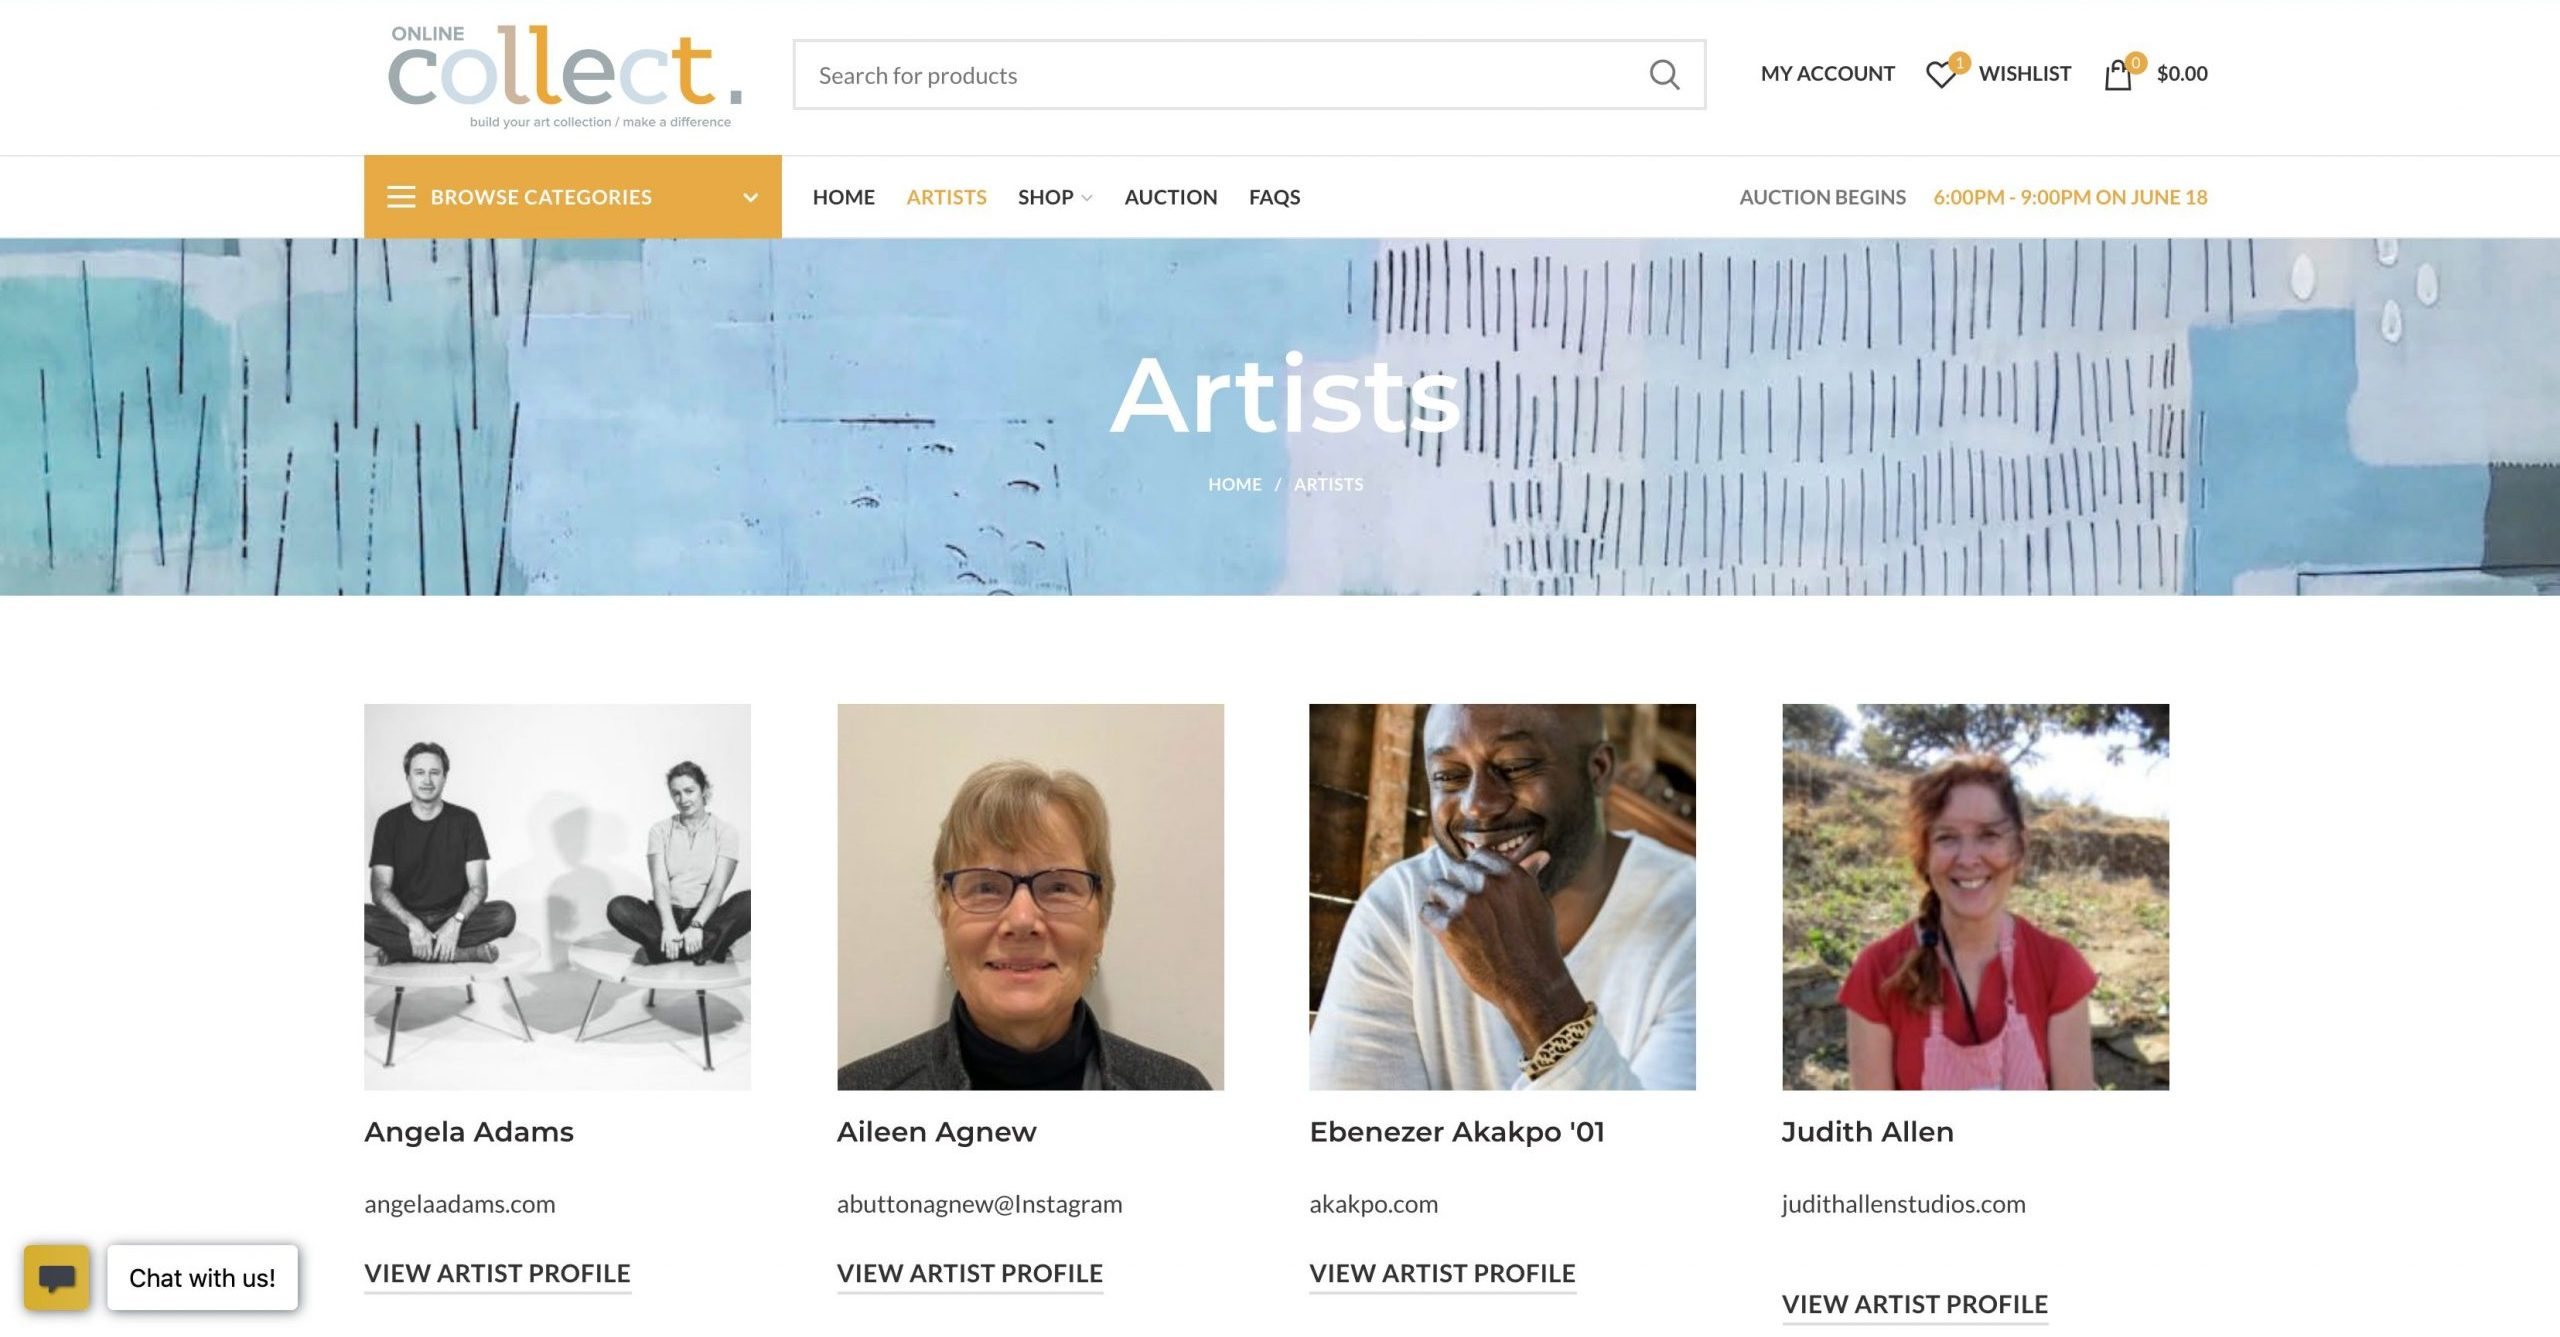 MECA online collect artists page